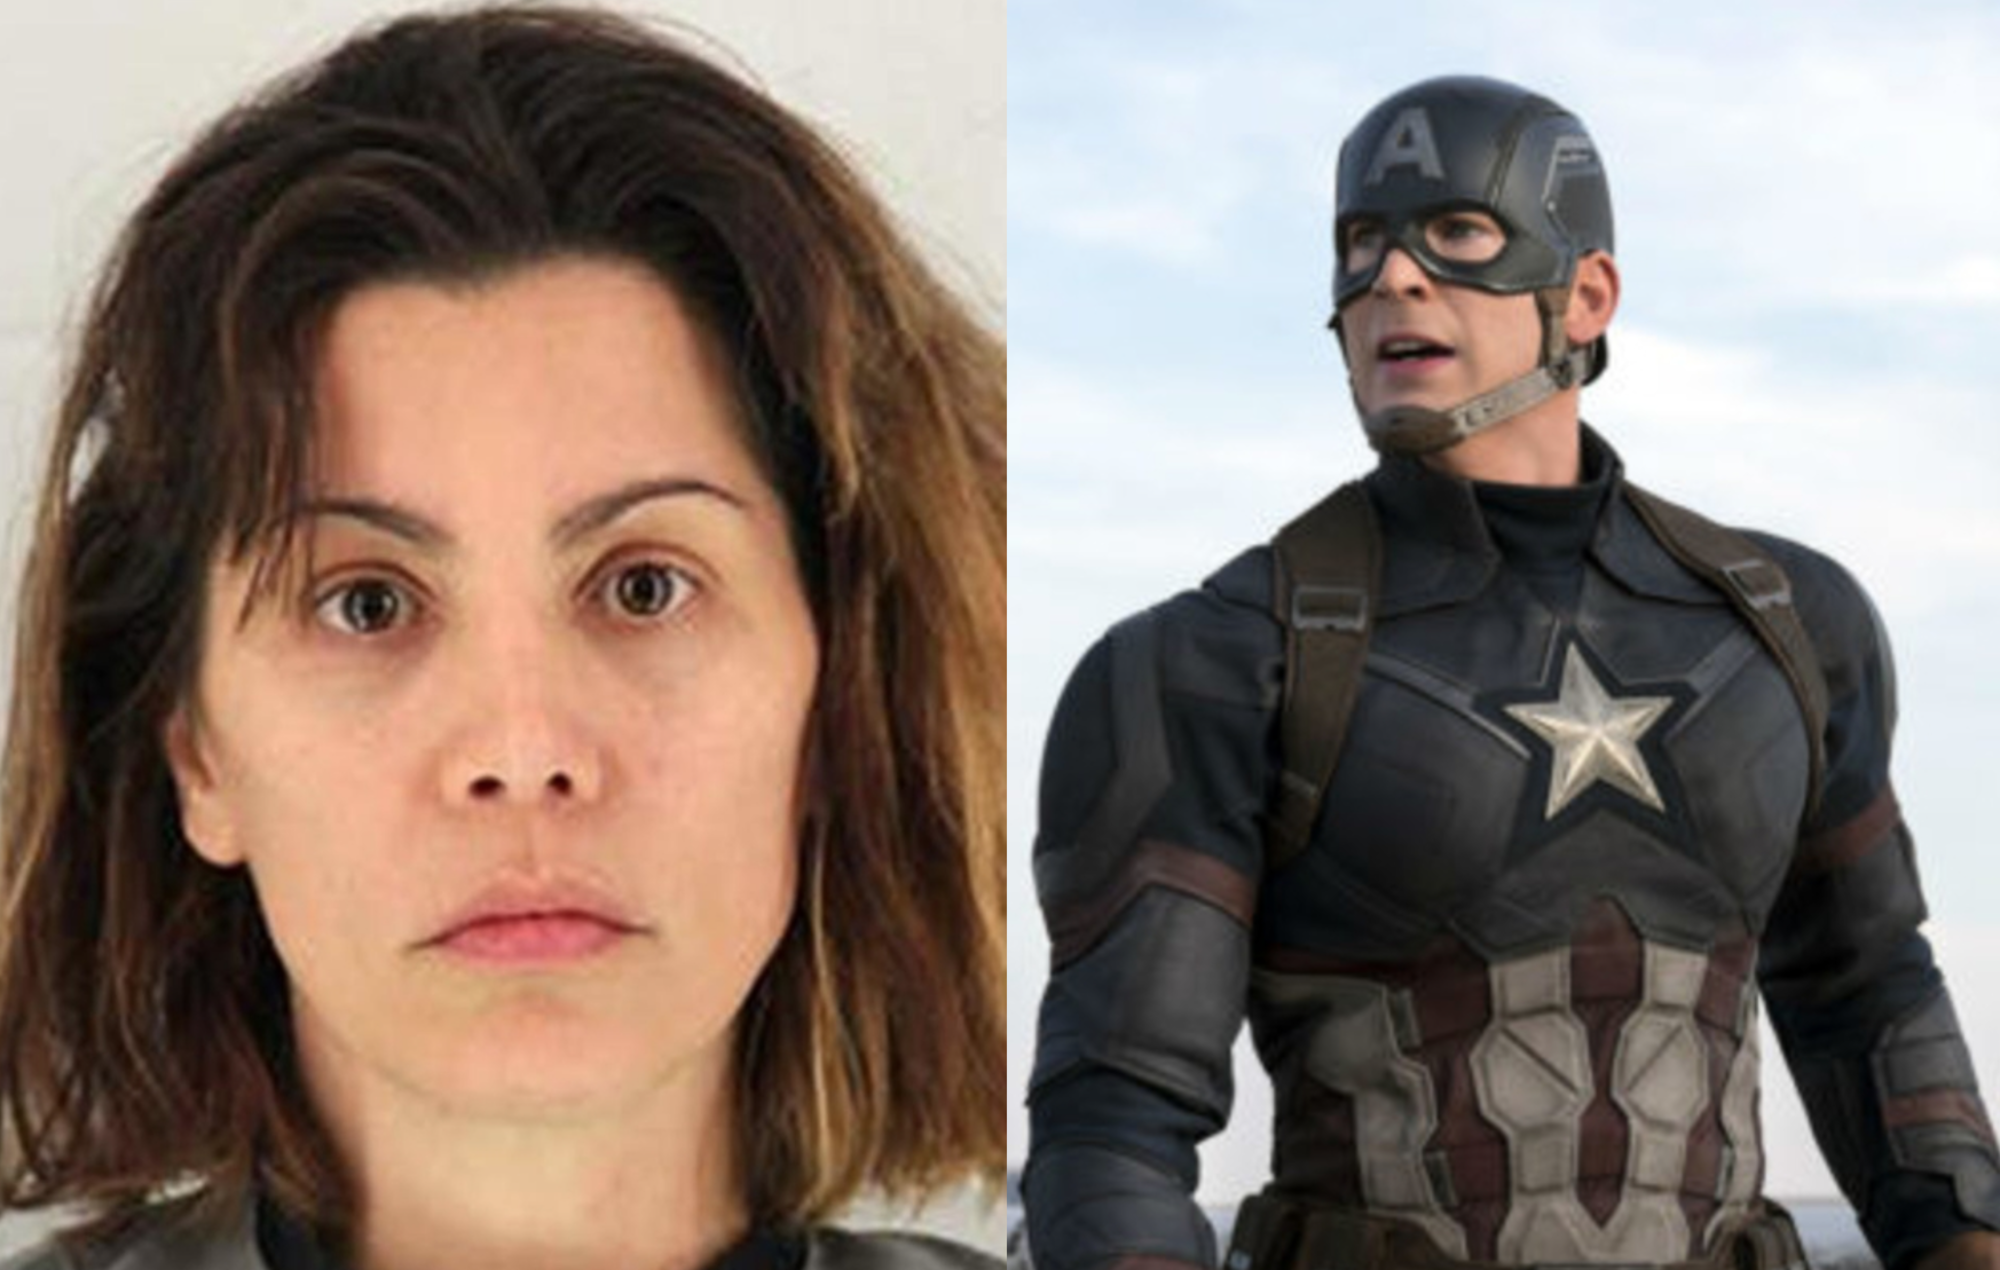 Captain America Actress Charged With Murdering Her Mother